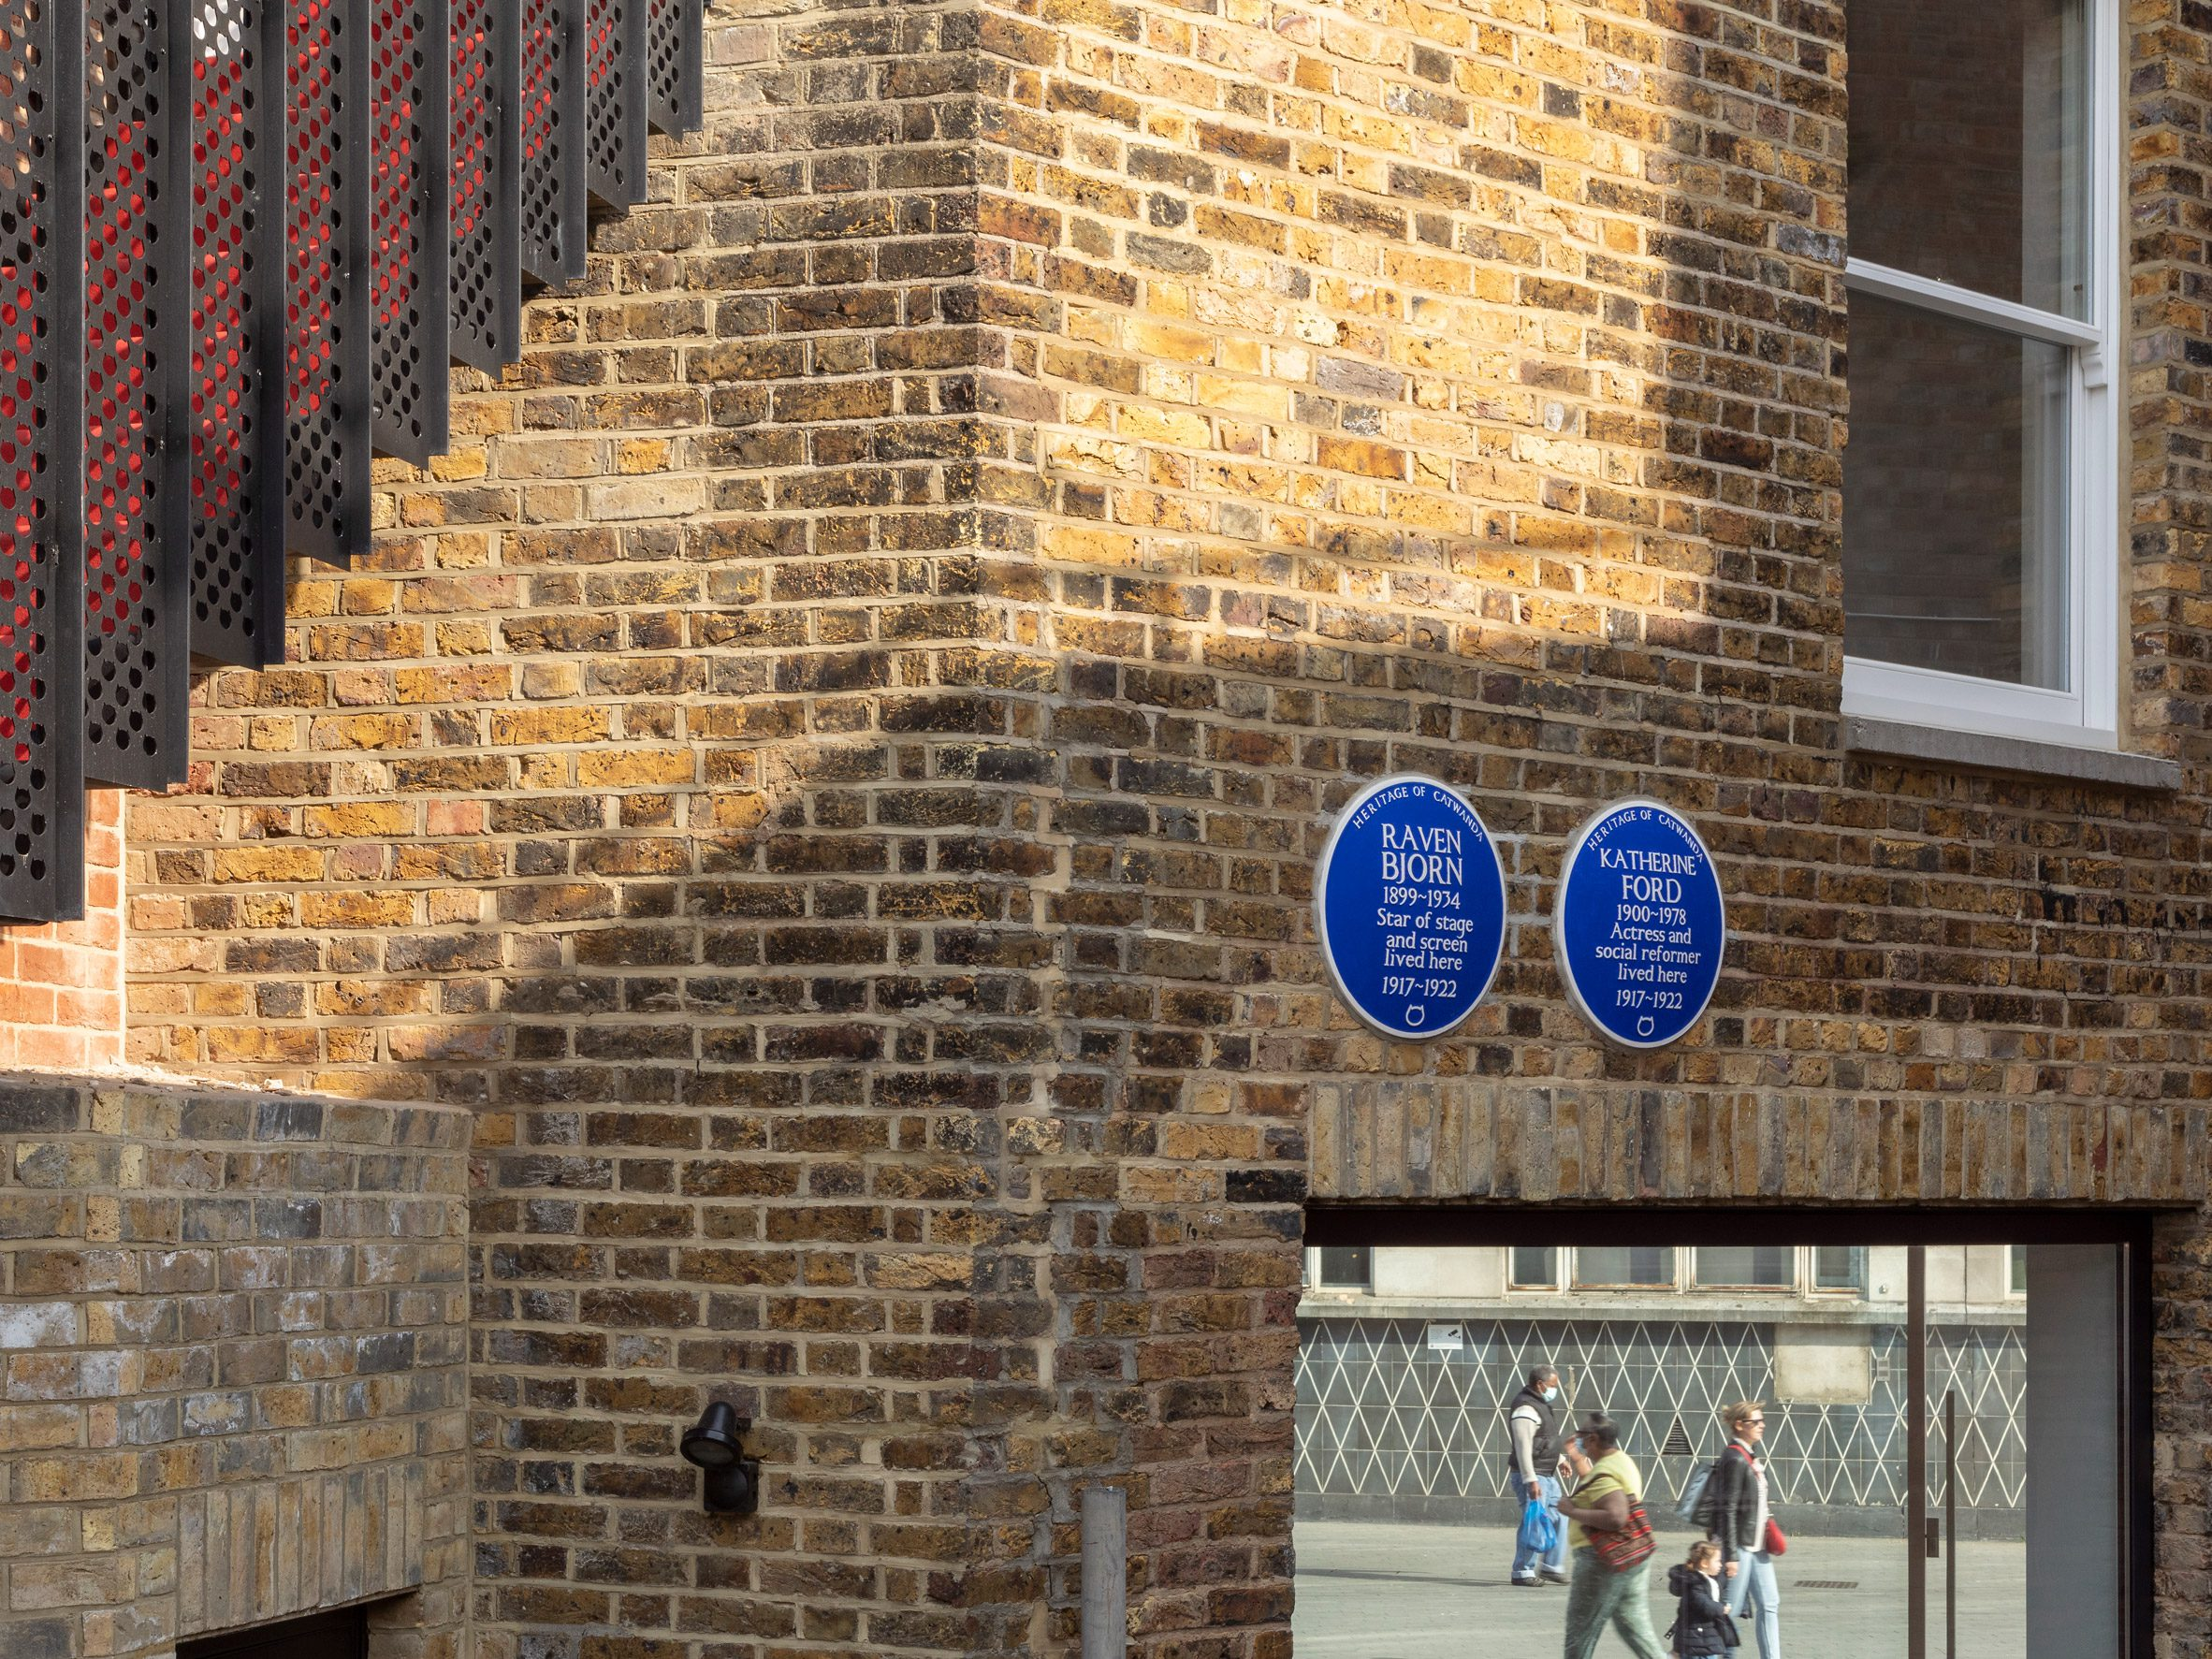 Blue heritage plaques on the exterior of The Queen of Catford by Tsuruta Architects